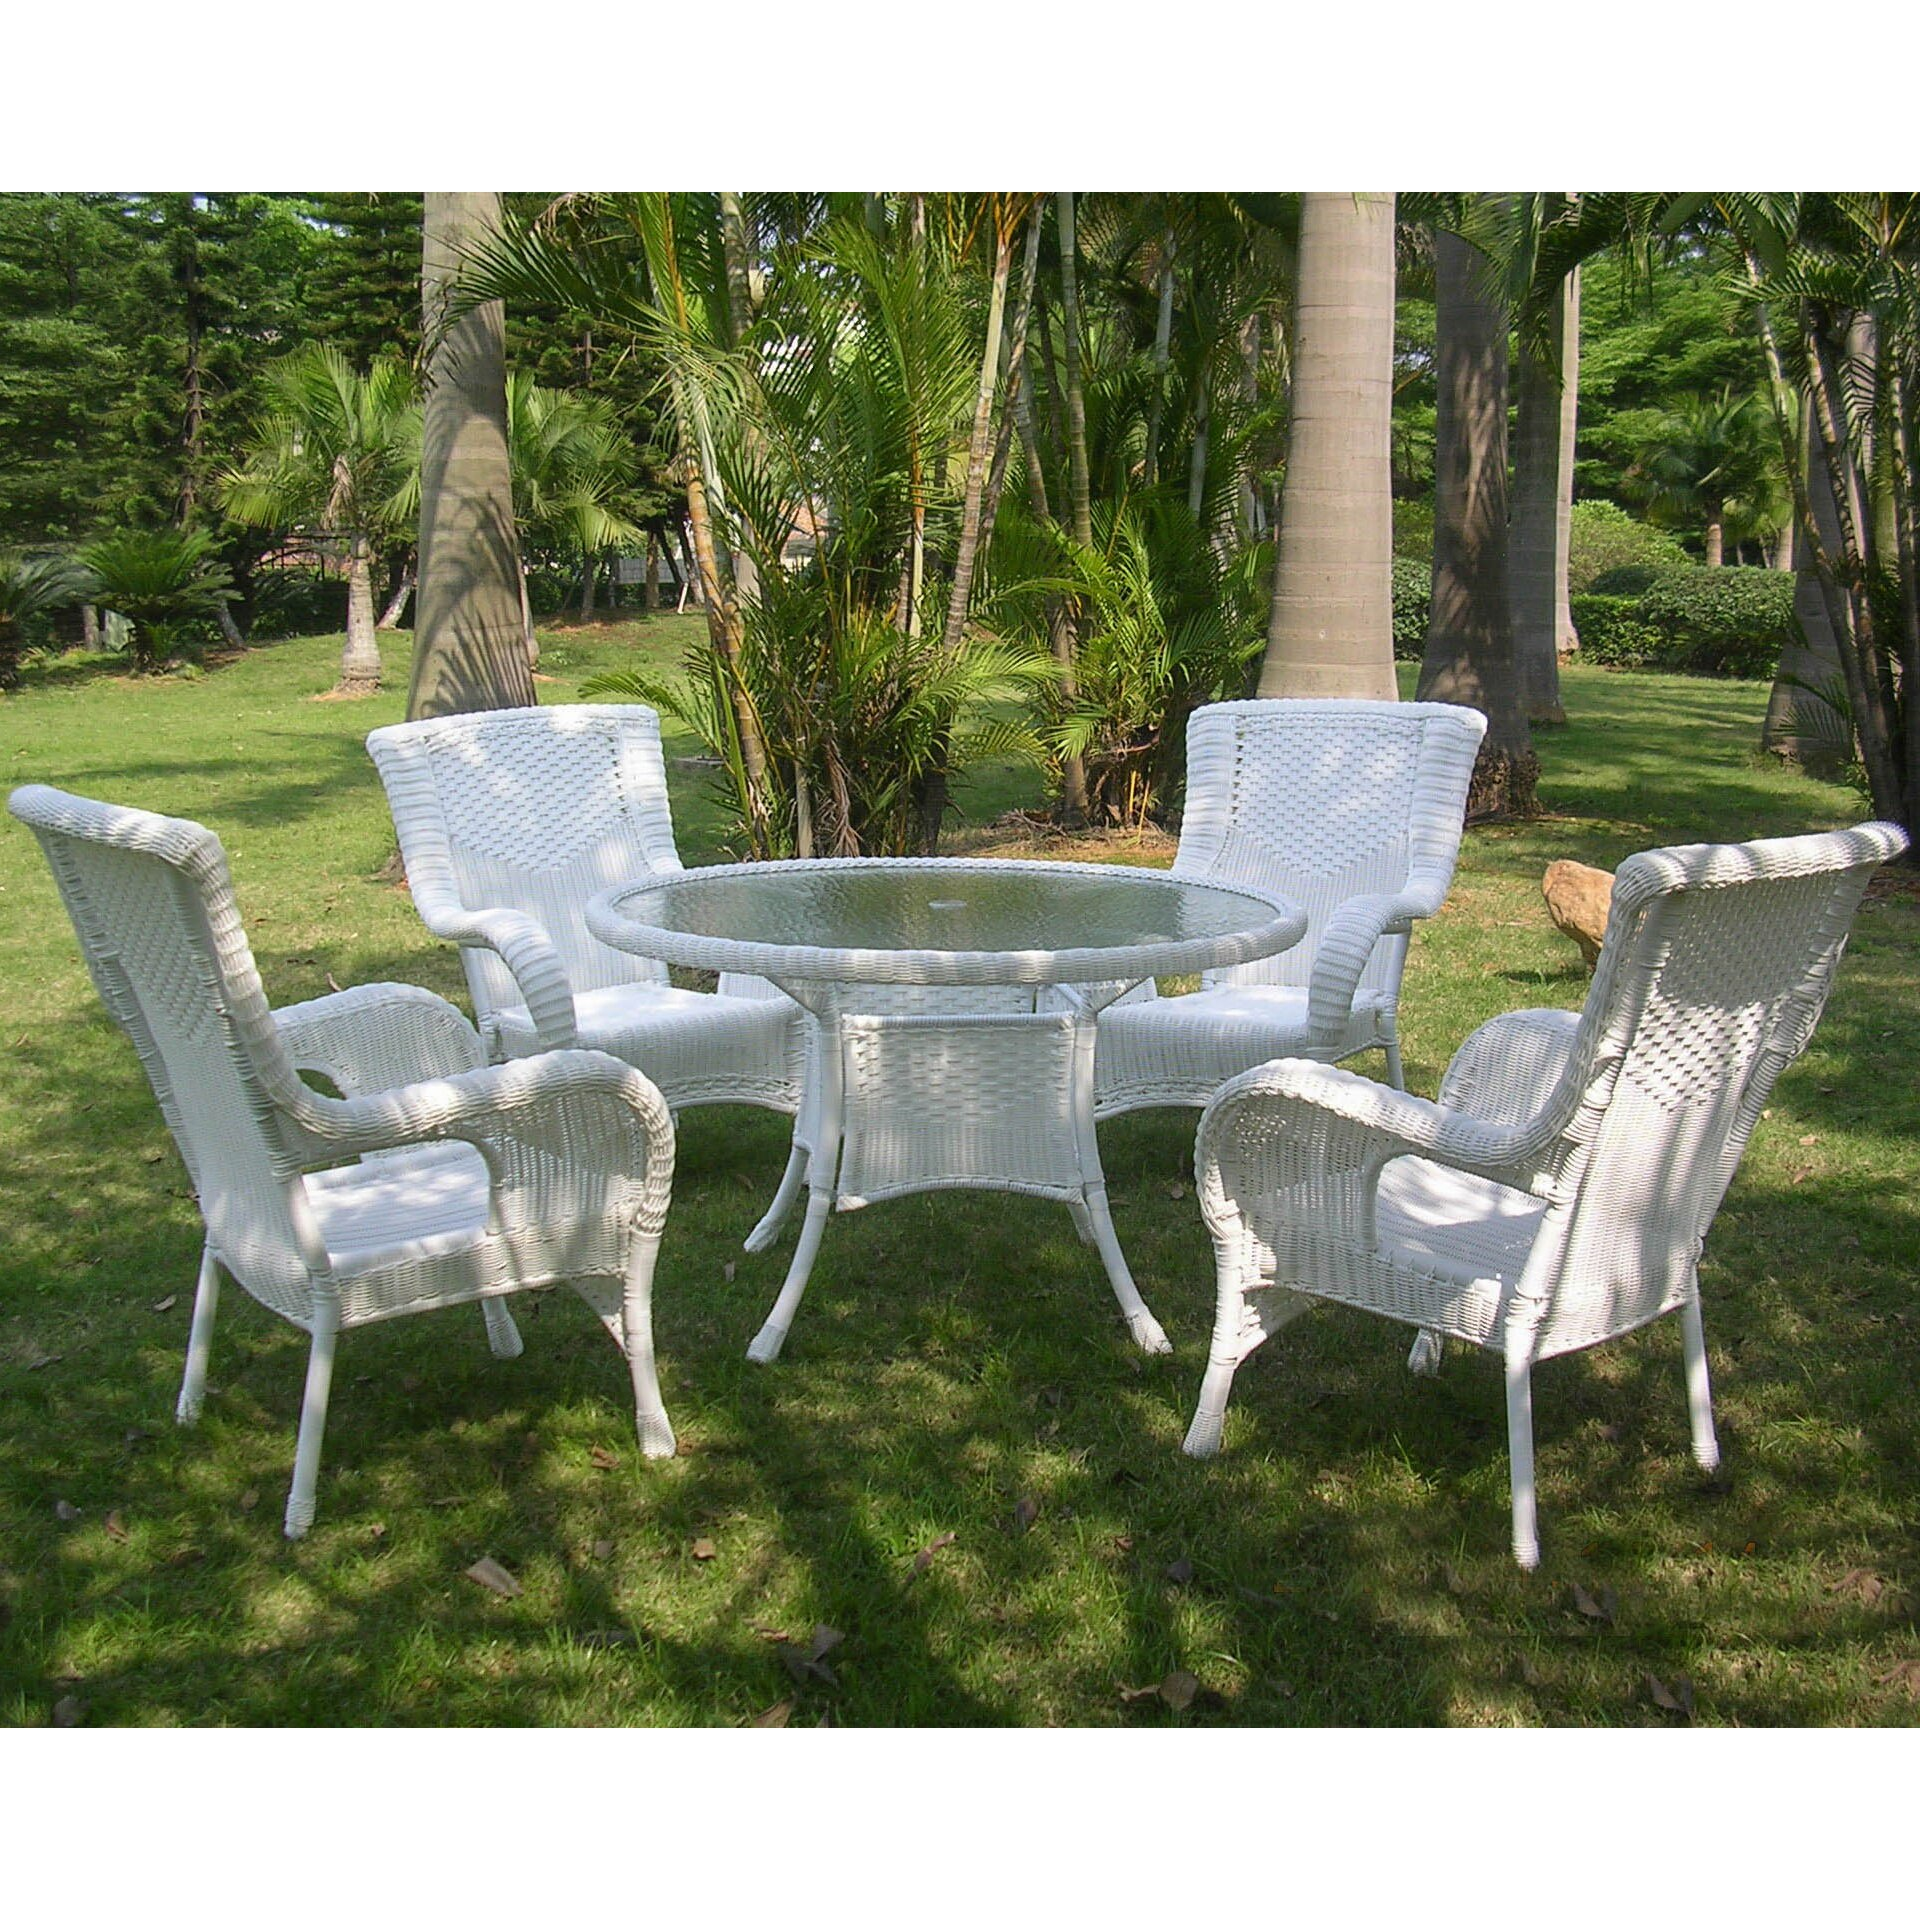 International Caravan San Tropez Set of 5 Wicker